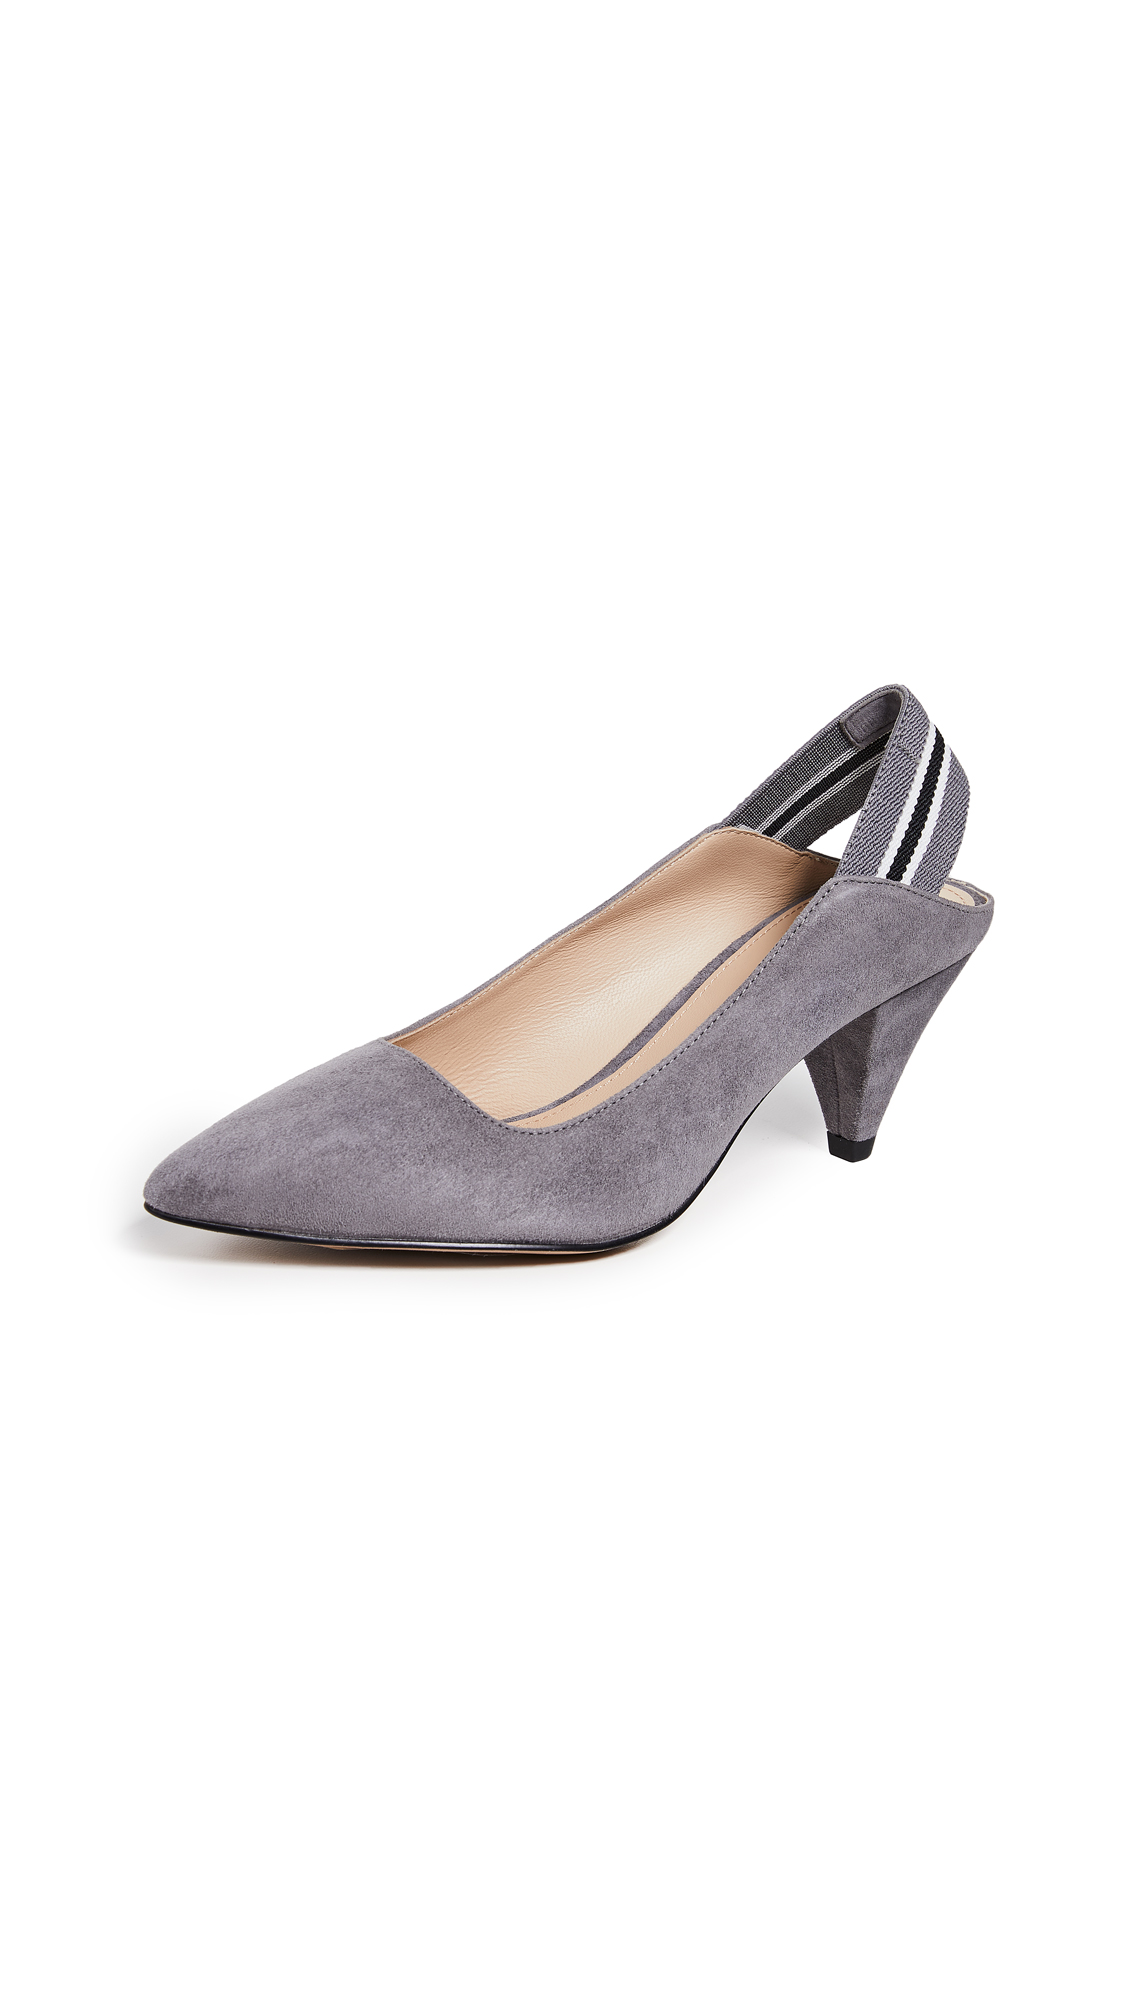 Women'S Cobble Hill Cone Heel Suede Slingback Pumps in French Grey